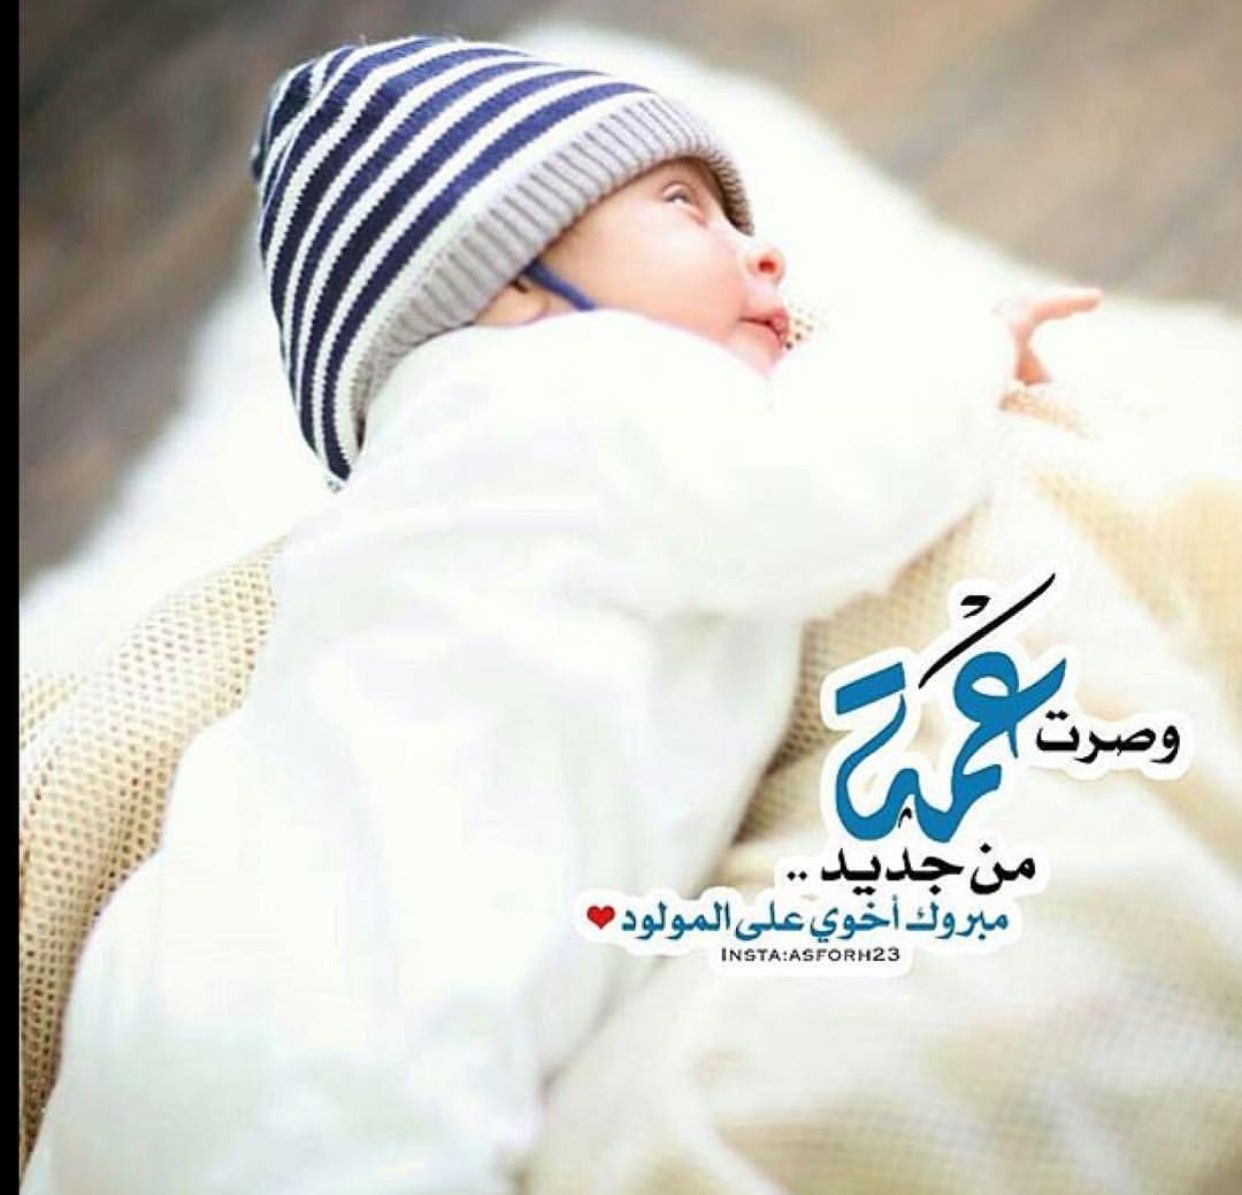 Pin By ѕyℓtaha Nssya Sgℓy On Baby Baby Boy Cards Baby Words Baby Themes